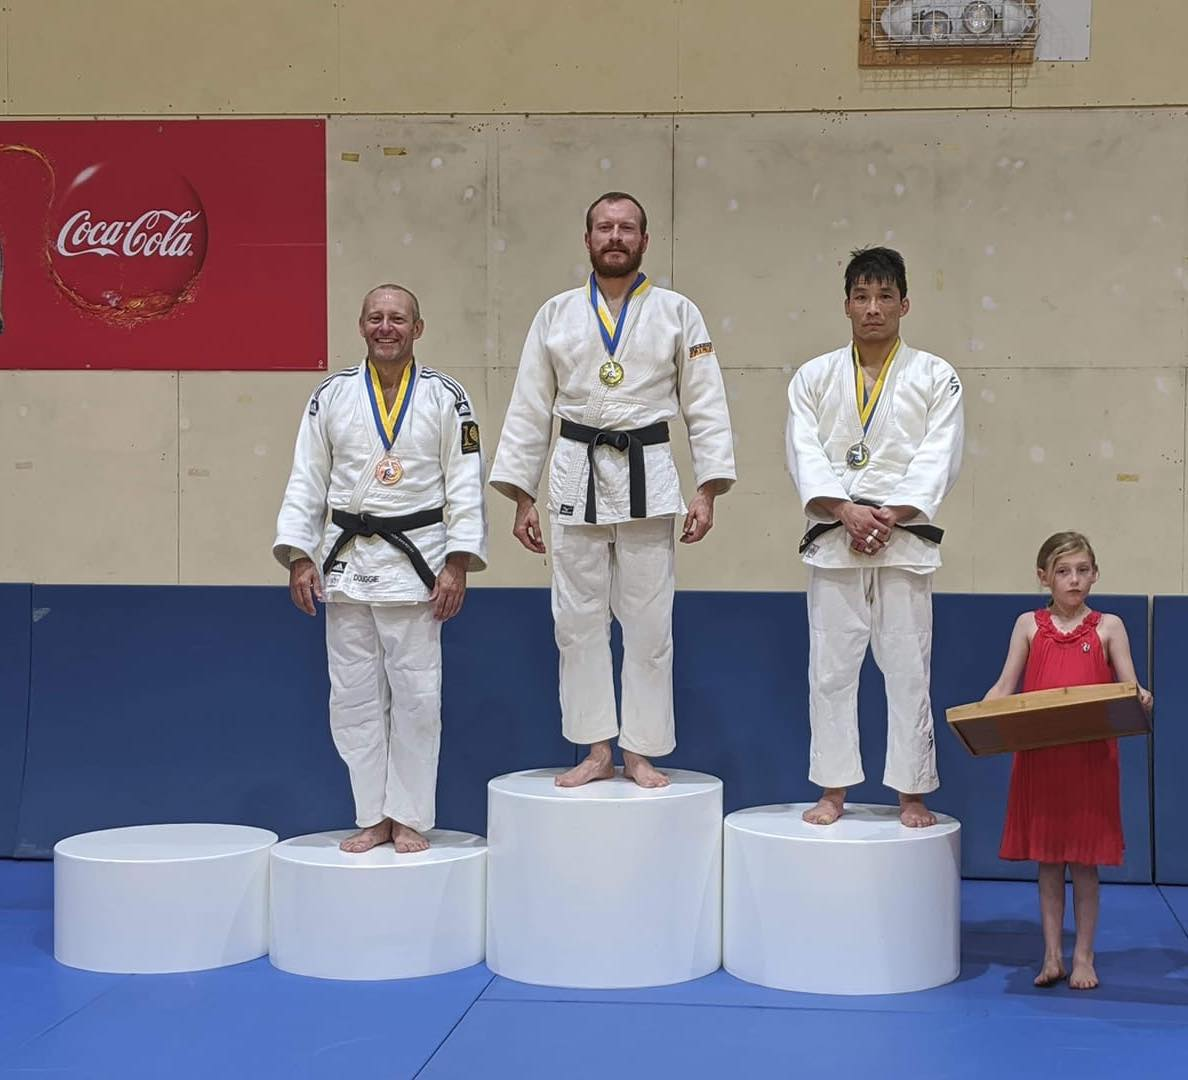 Congratulations to Chris Sensei for winning gold at the Canberra Judo Internatio…